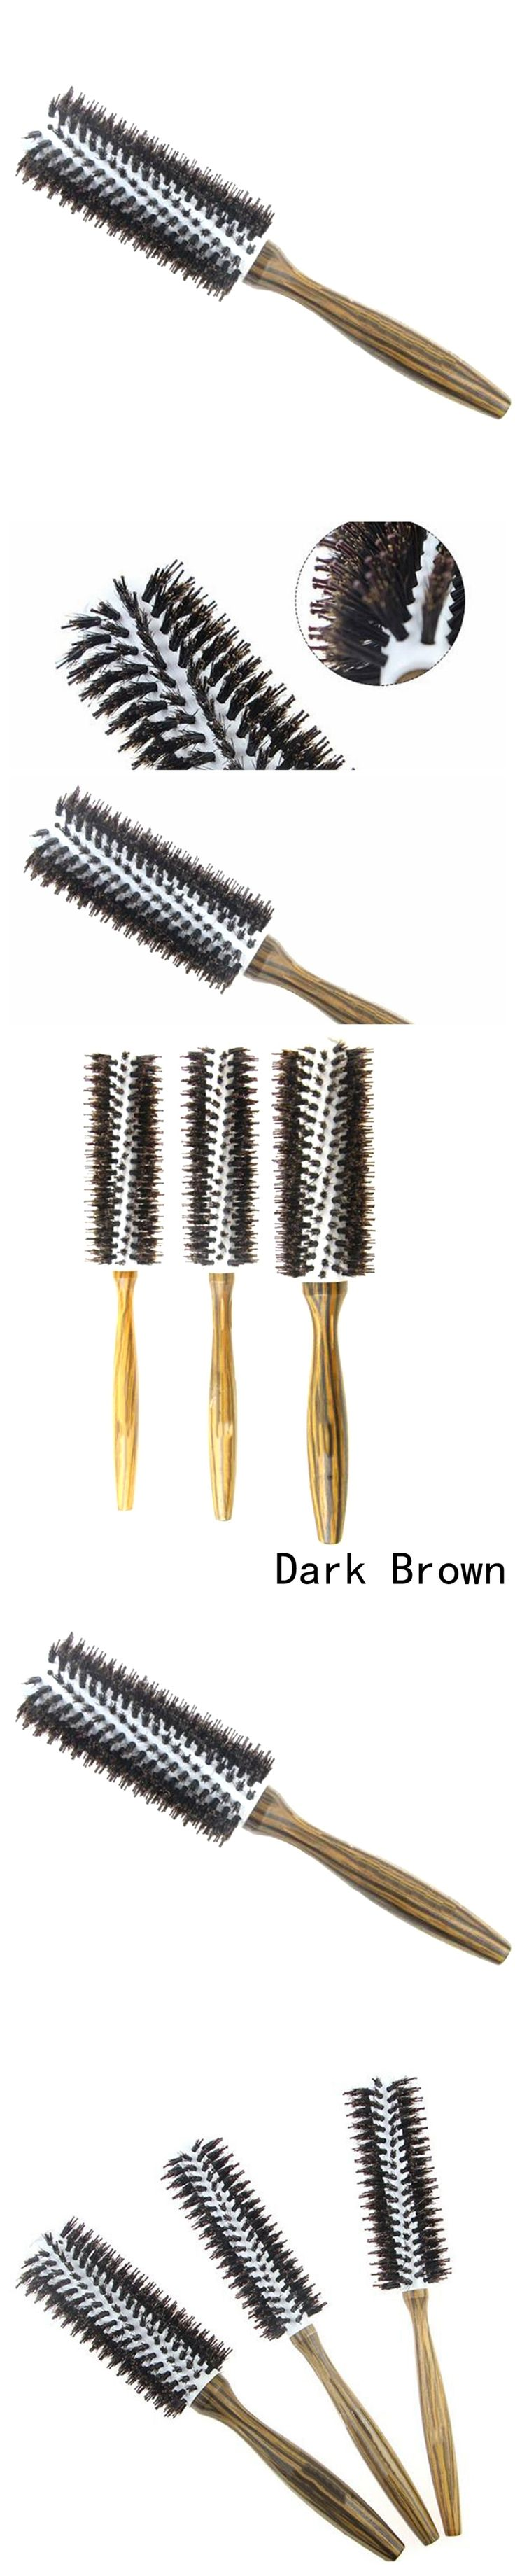 Roll Round Hair Brush Comb Brush Hair Care Tool Wood Handle Natural Bristle Curly Hair Brush Fluffy Comb Hairdressing